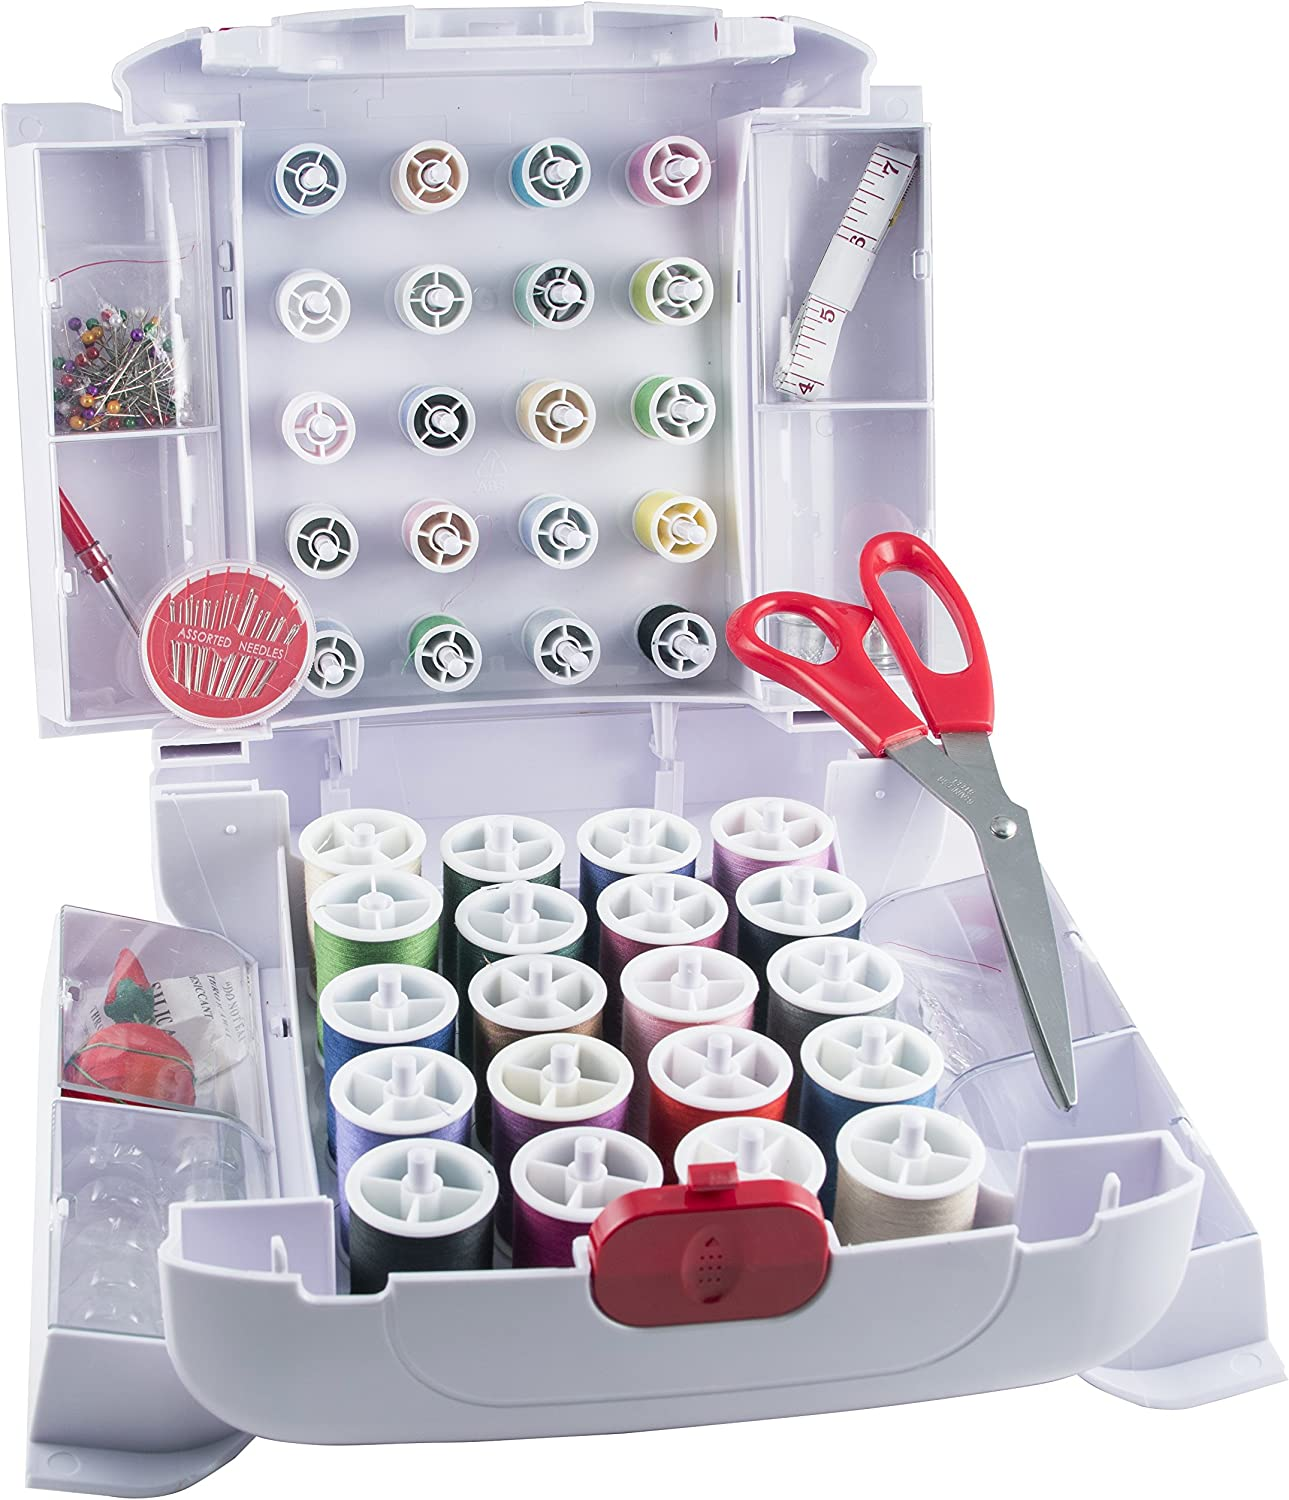 The best thread for quilting and sewing-SINGER Sew Essential Storage System